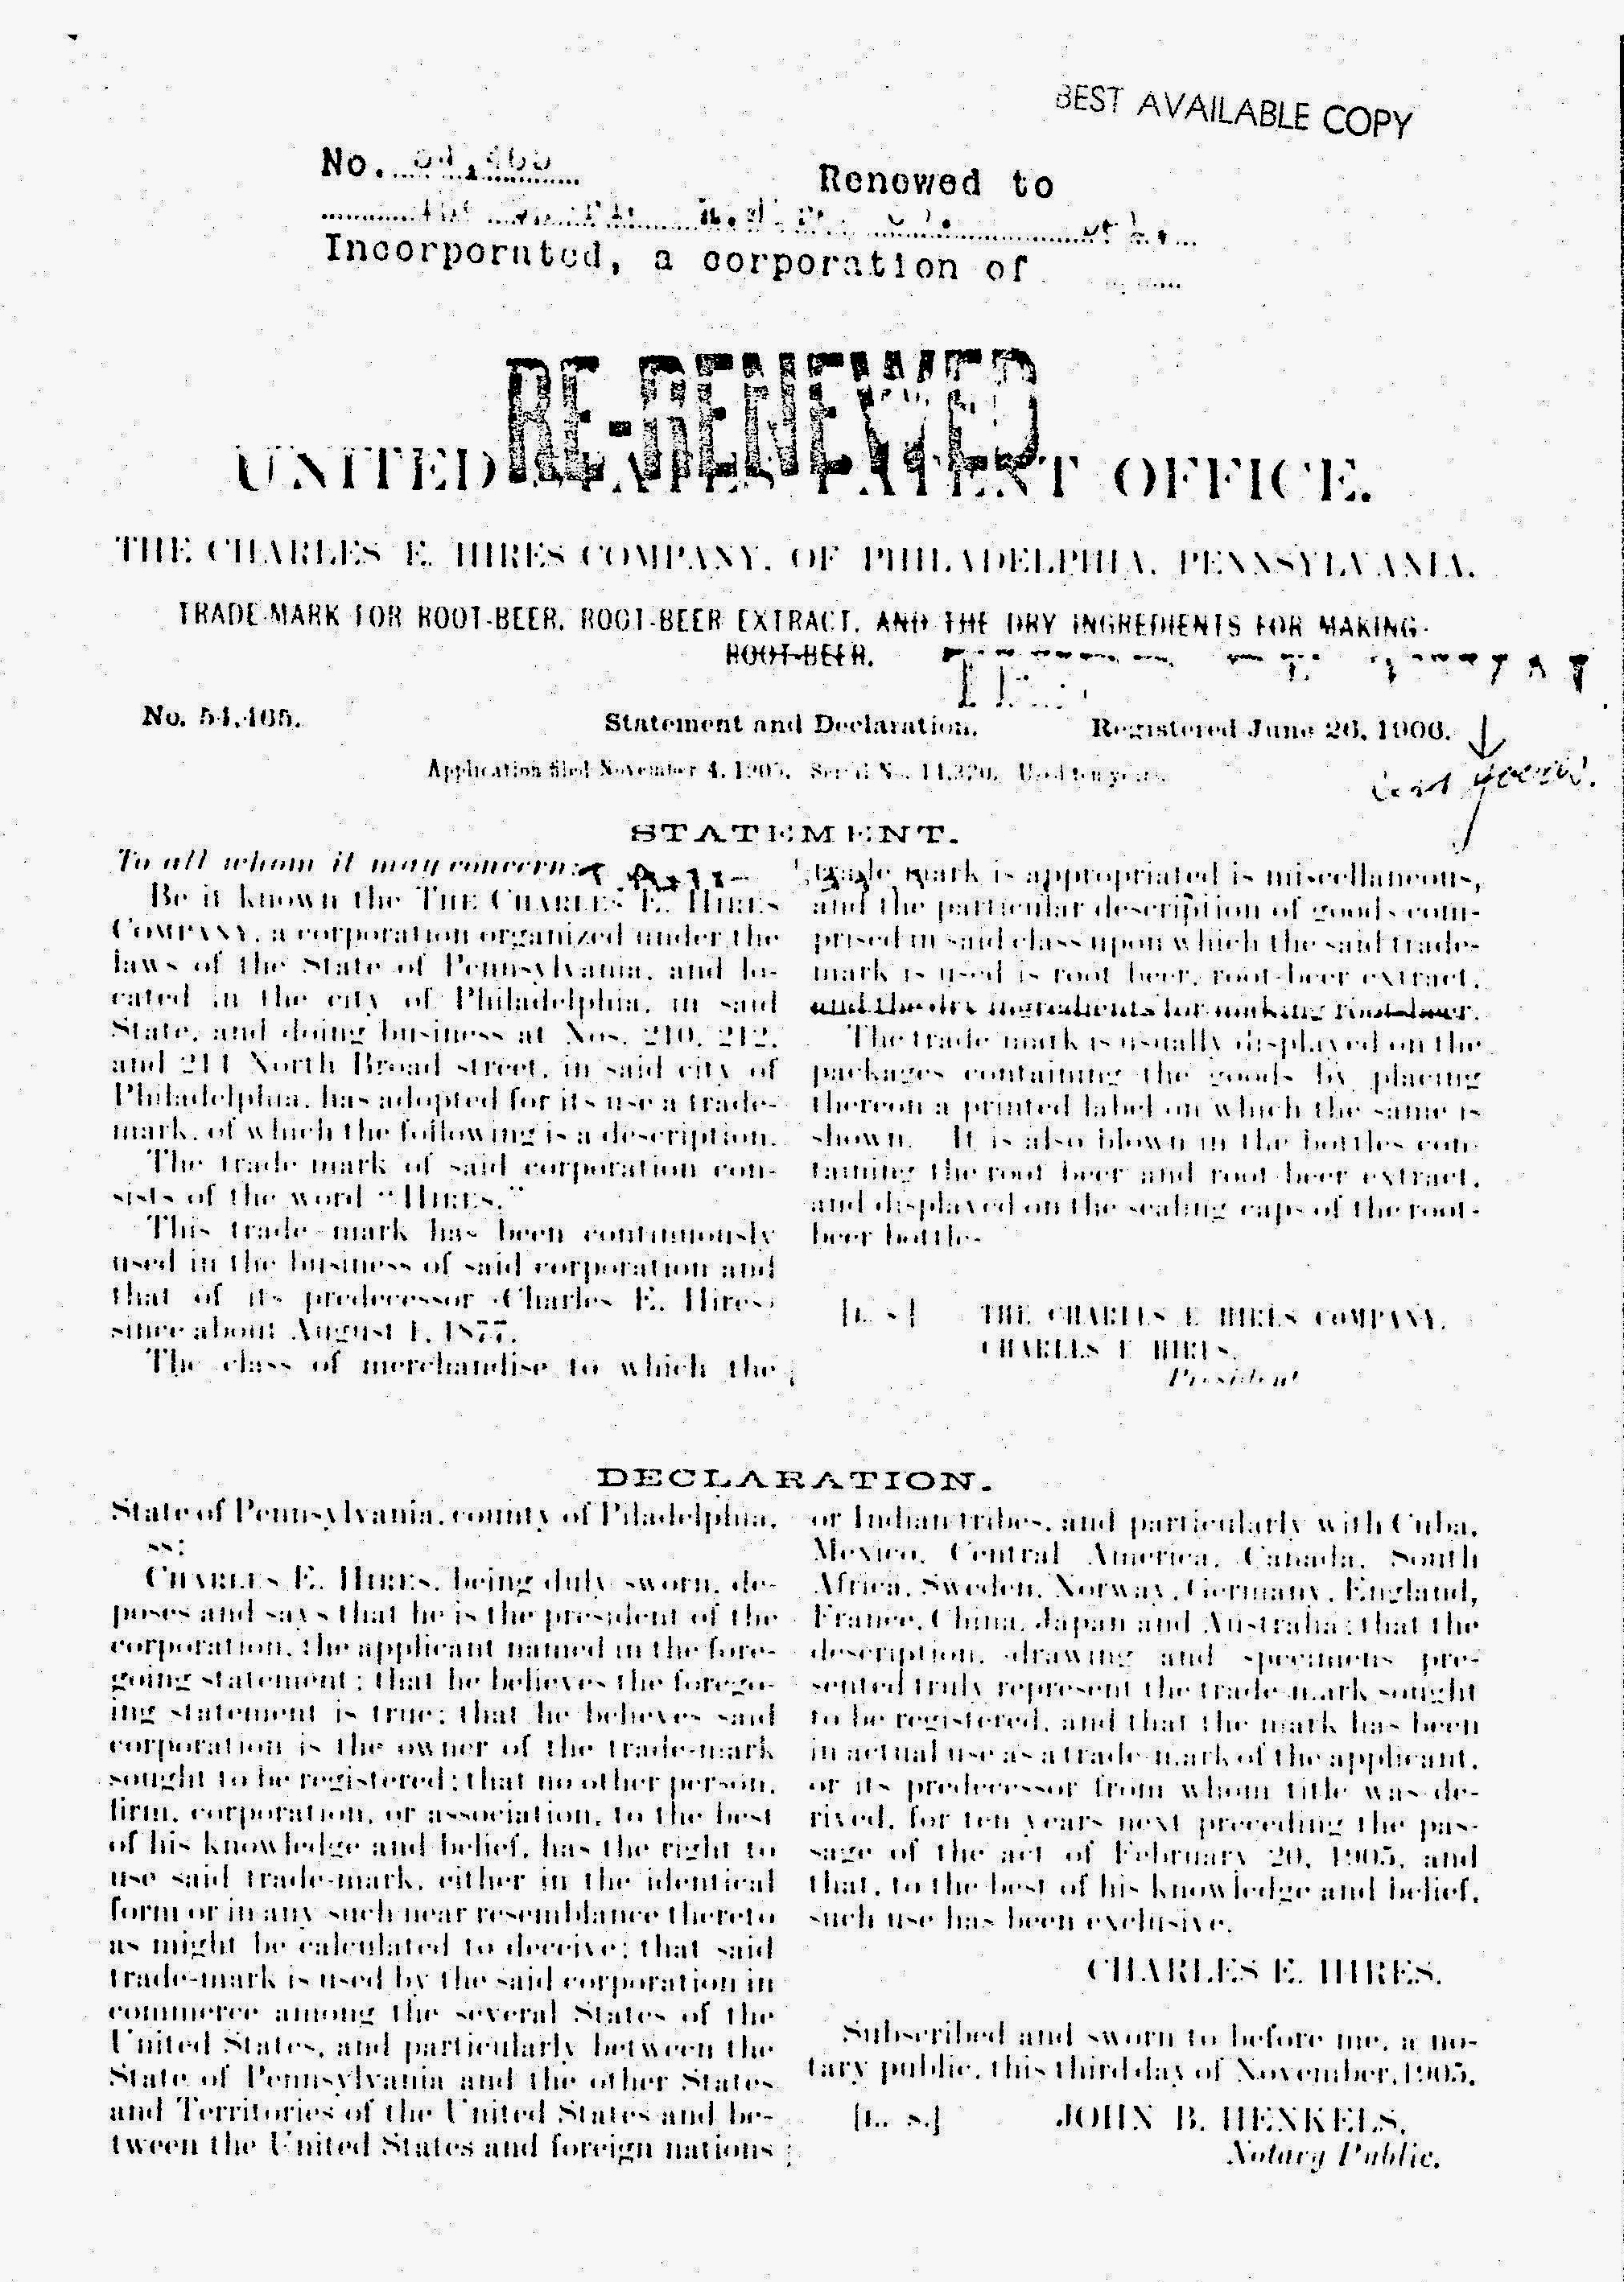 Hires 1906 Original Trademark Document Page Two (2).jpg